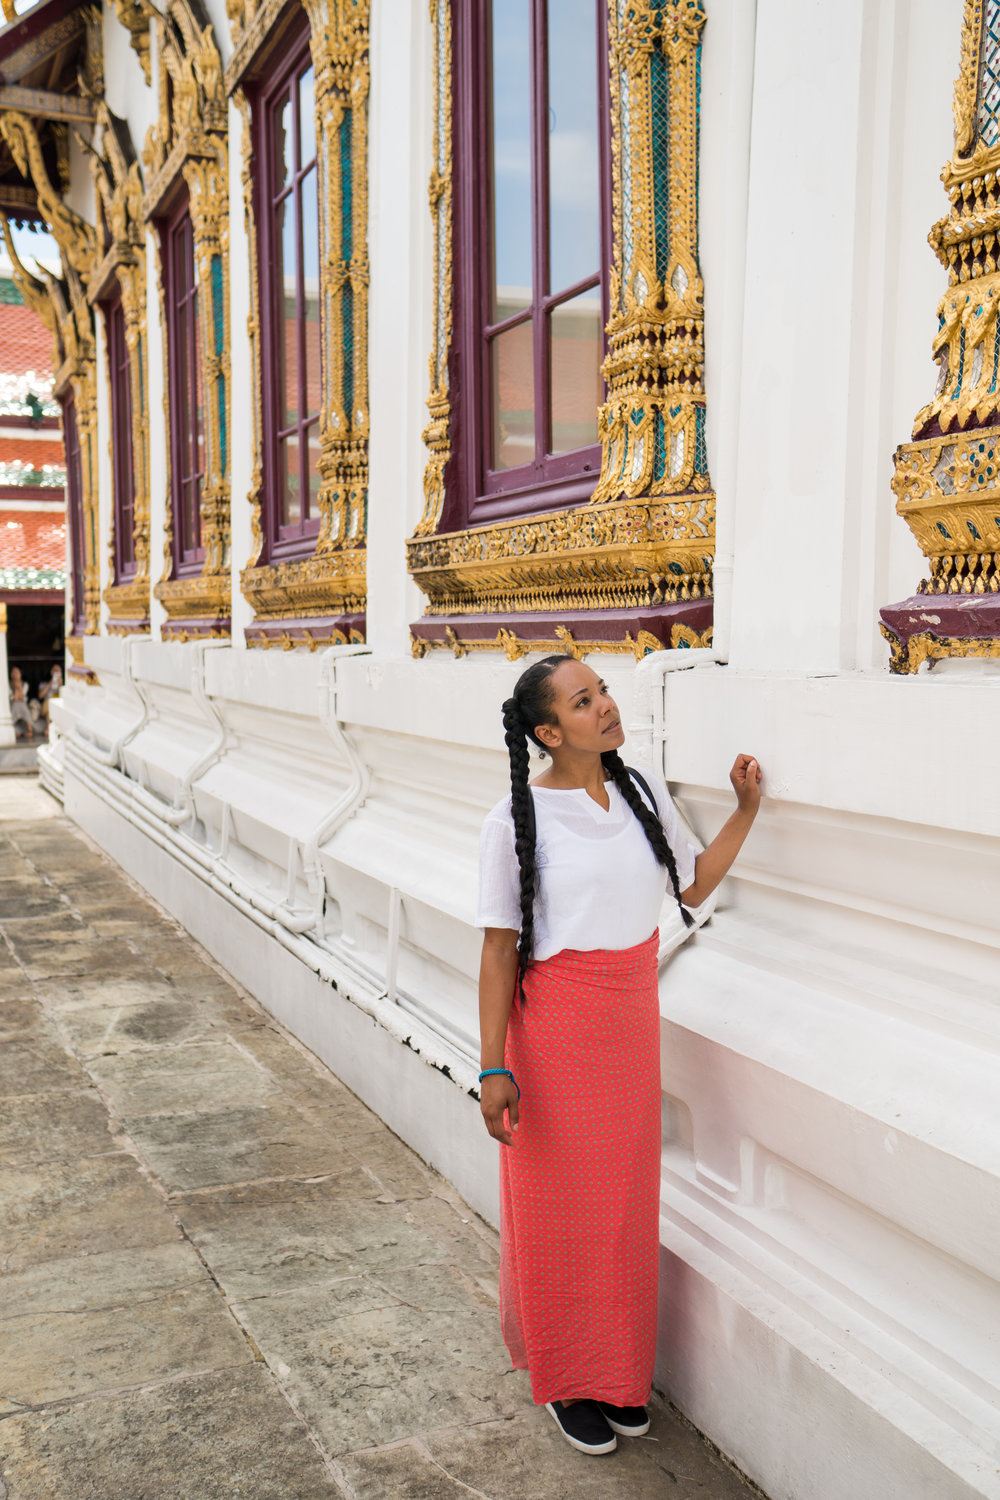 What to wear while visiting temples in Thailand